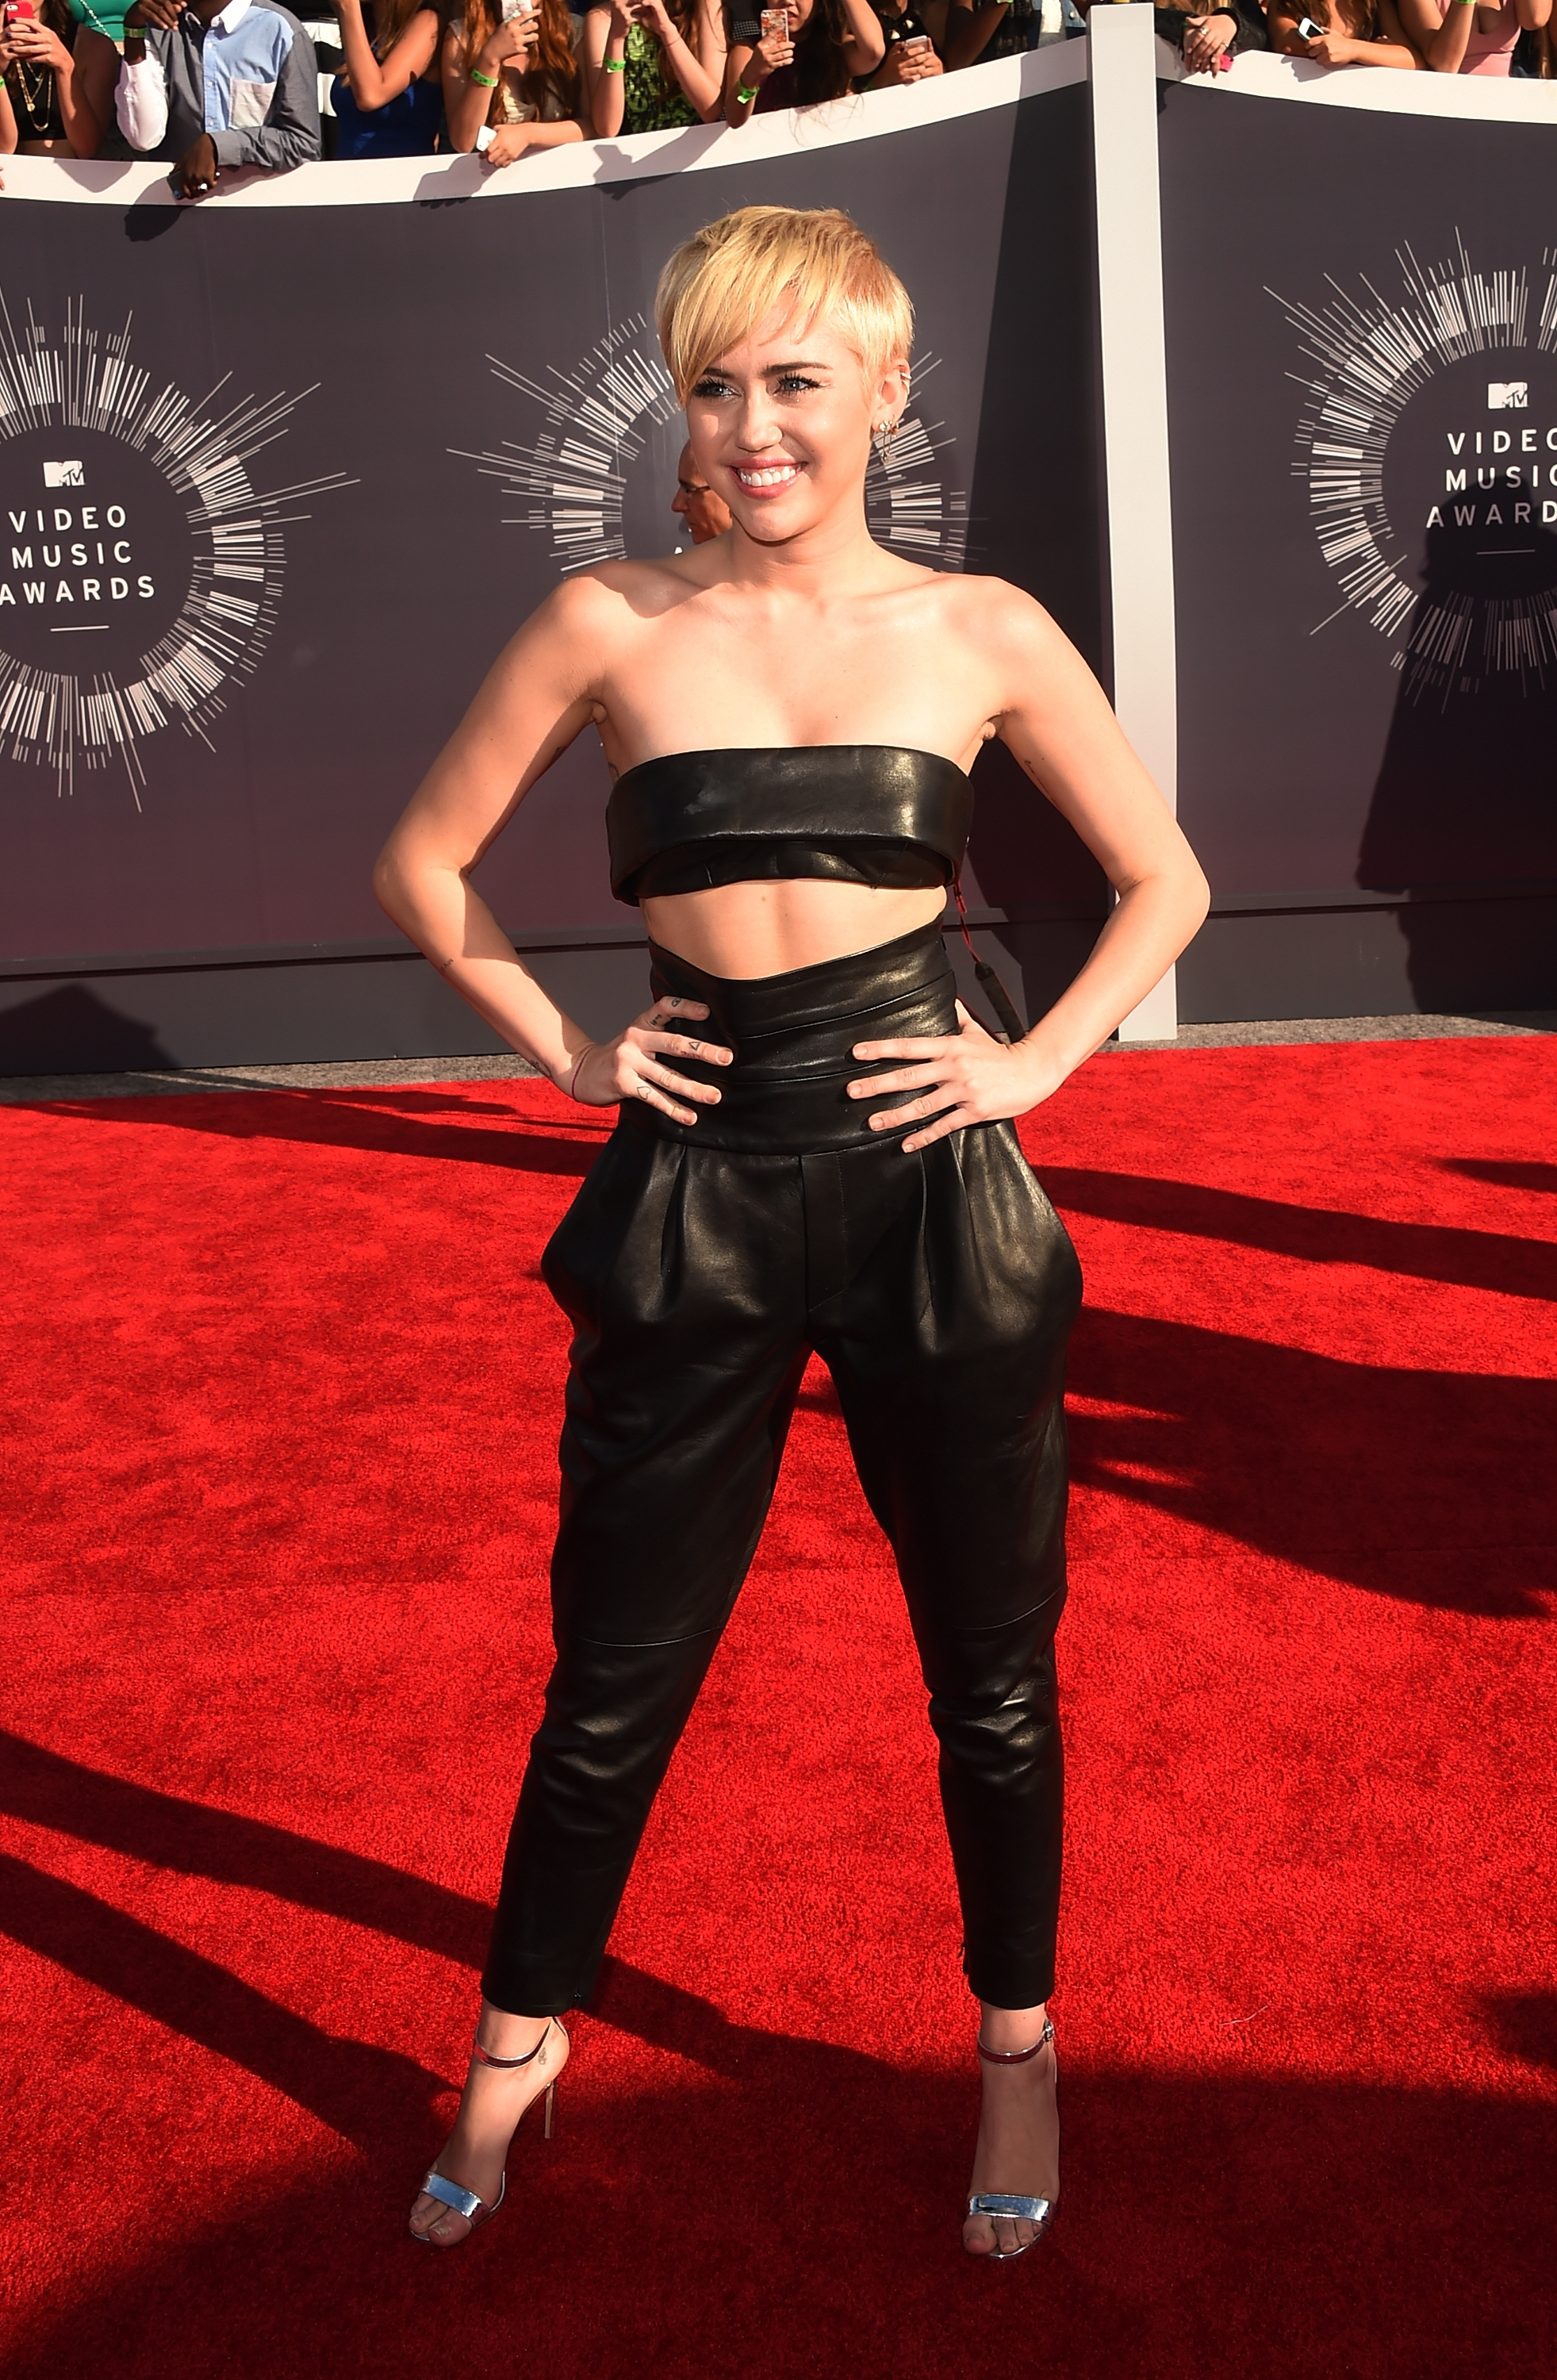 Miley Cyrus made a statement with more than her fashion Sunday night at the MTV Video Music Awards.